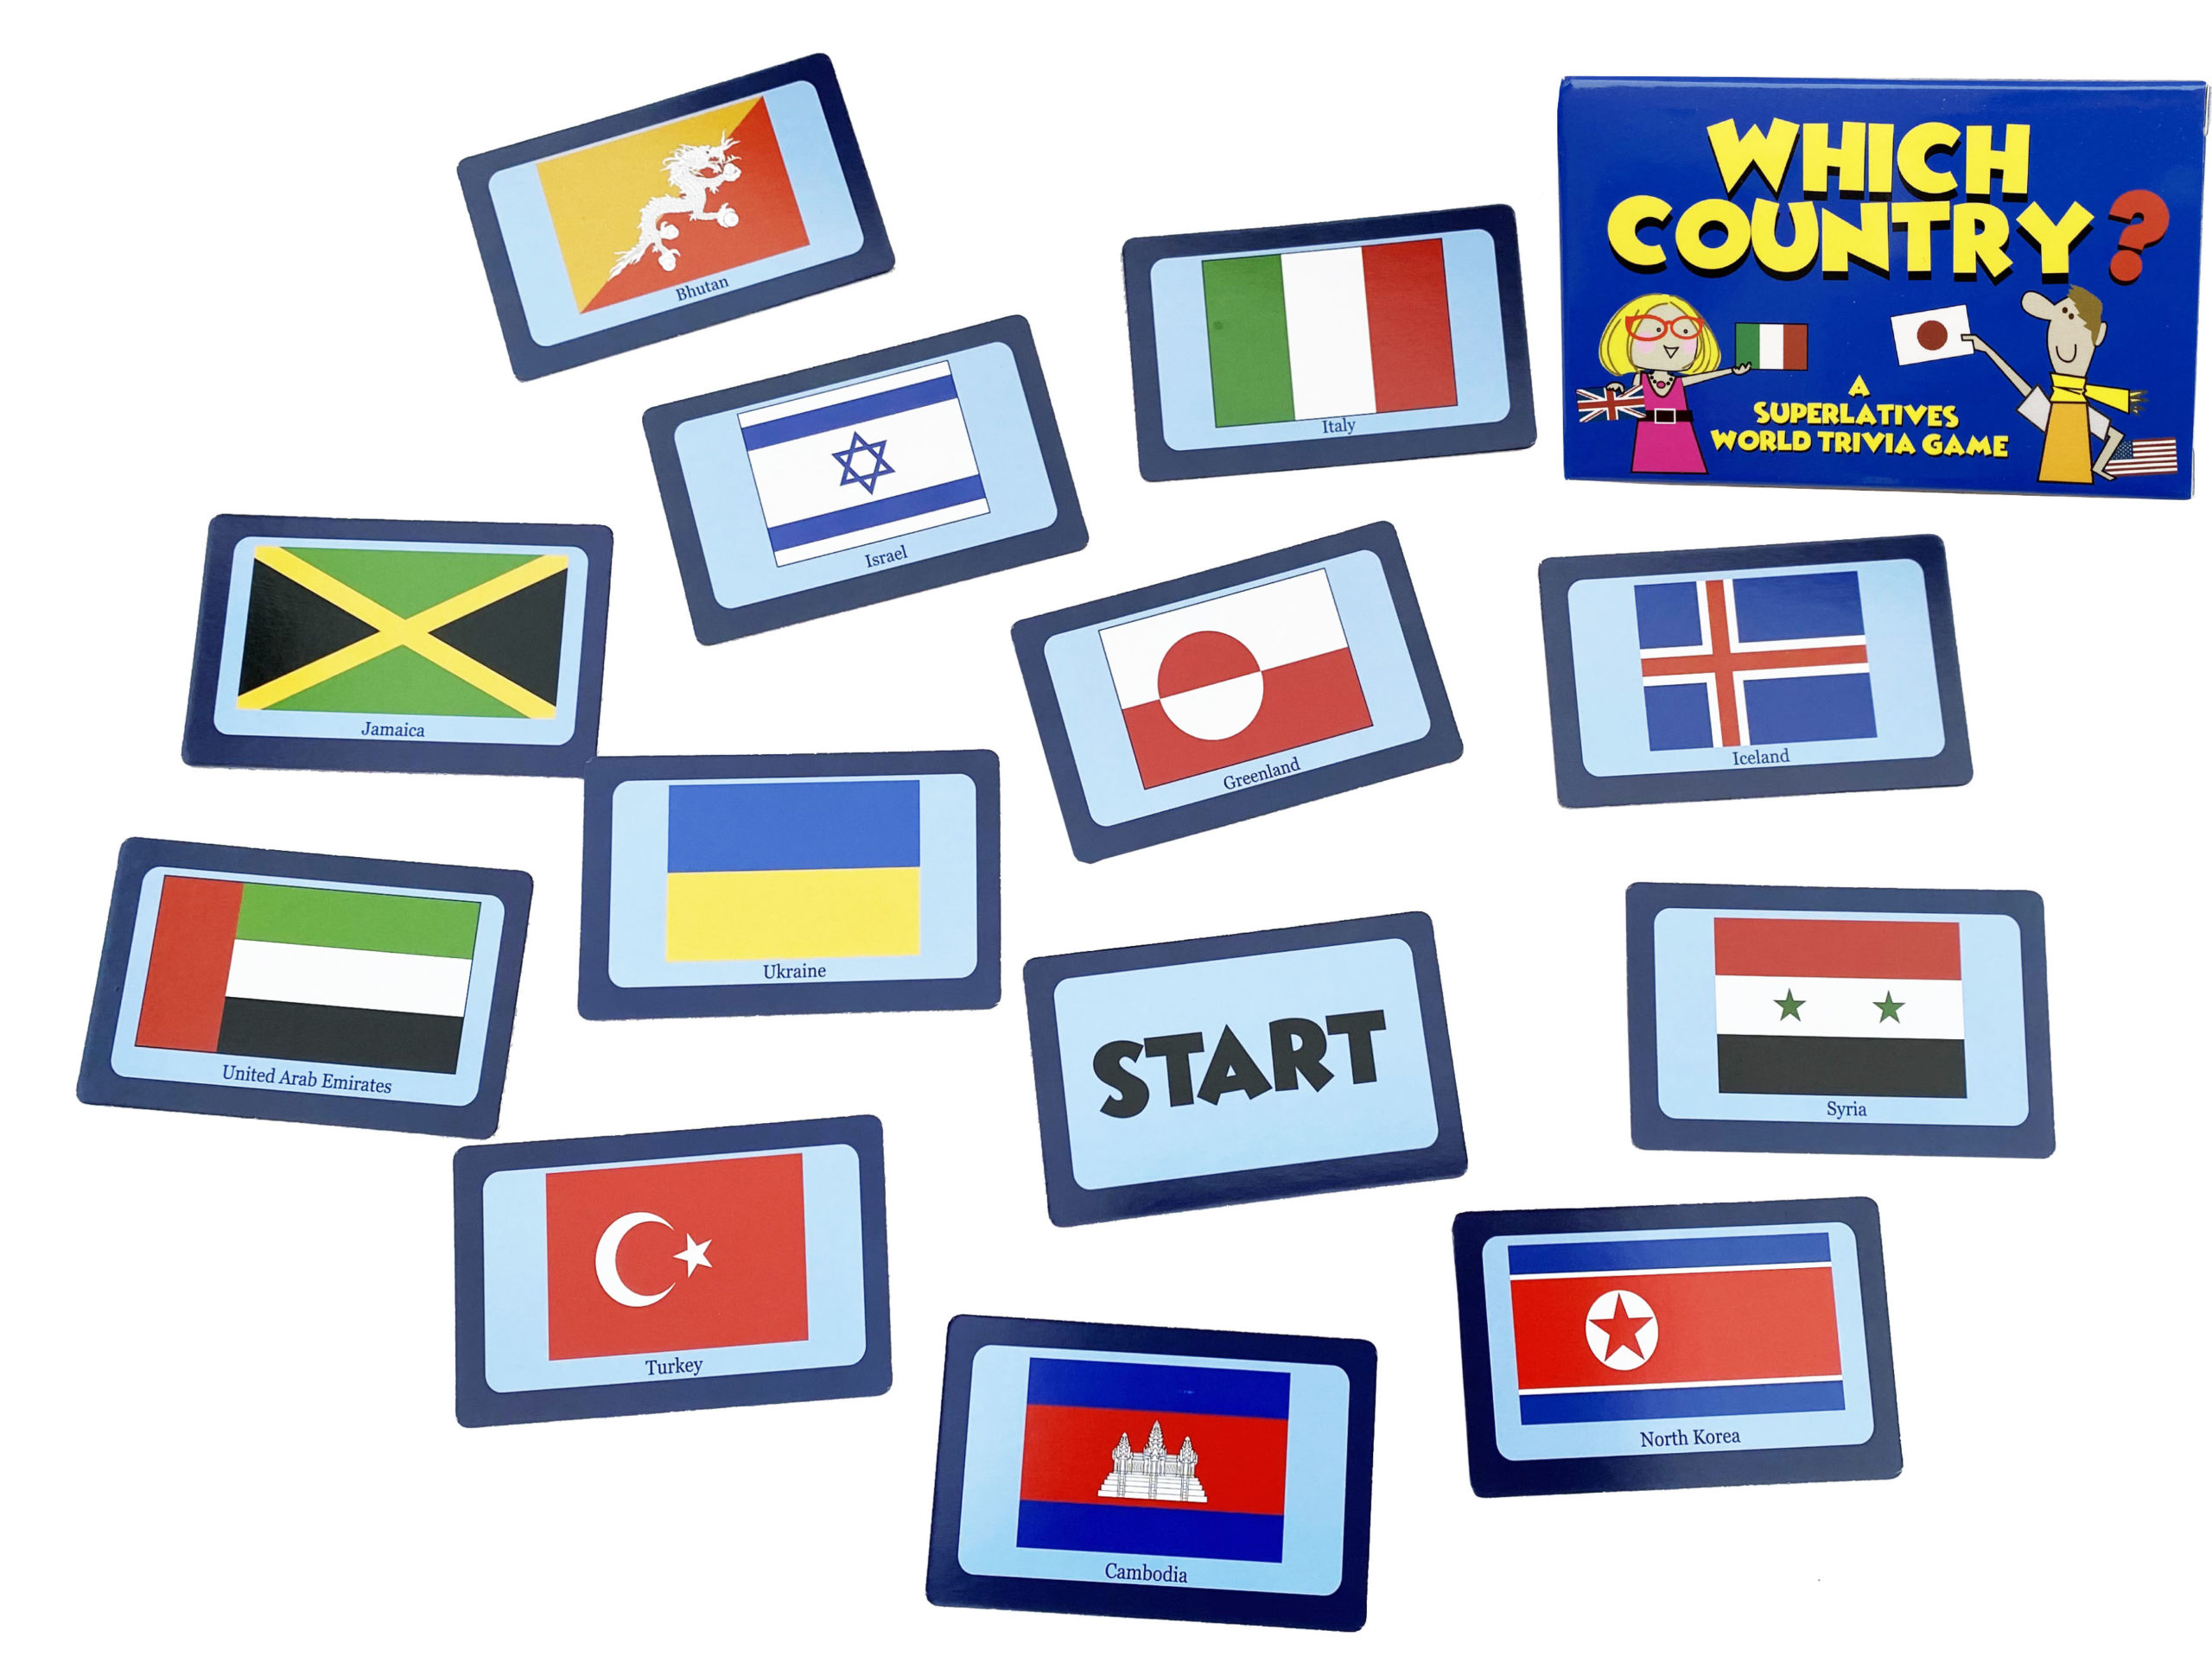 WHICH COUNTRY? Card game